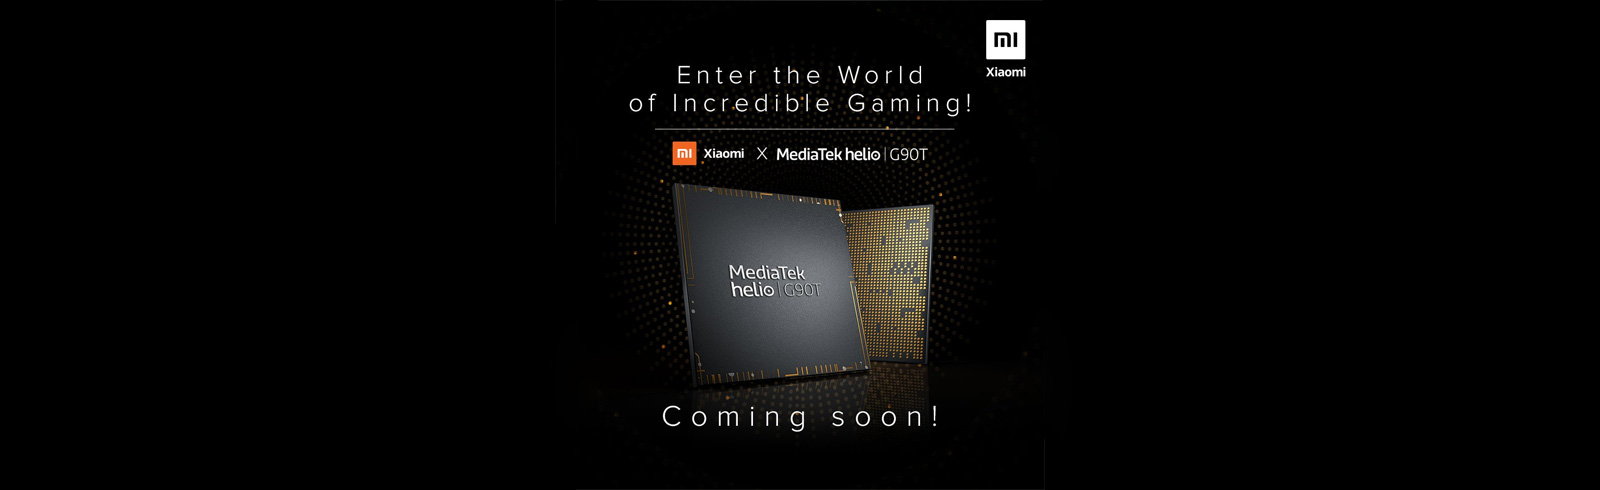 Xiaomi India will announce a Helio G90T-powered smartphone soon